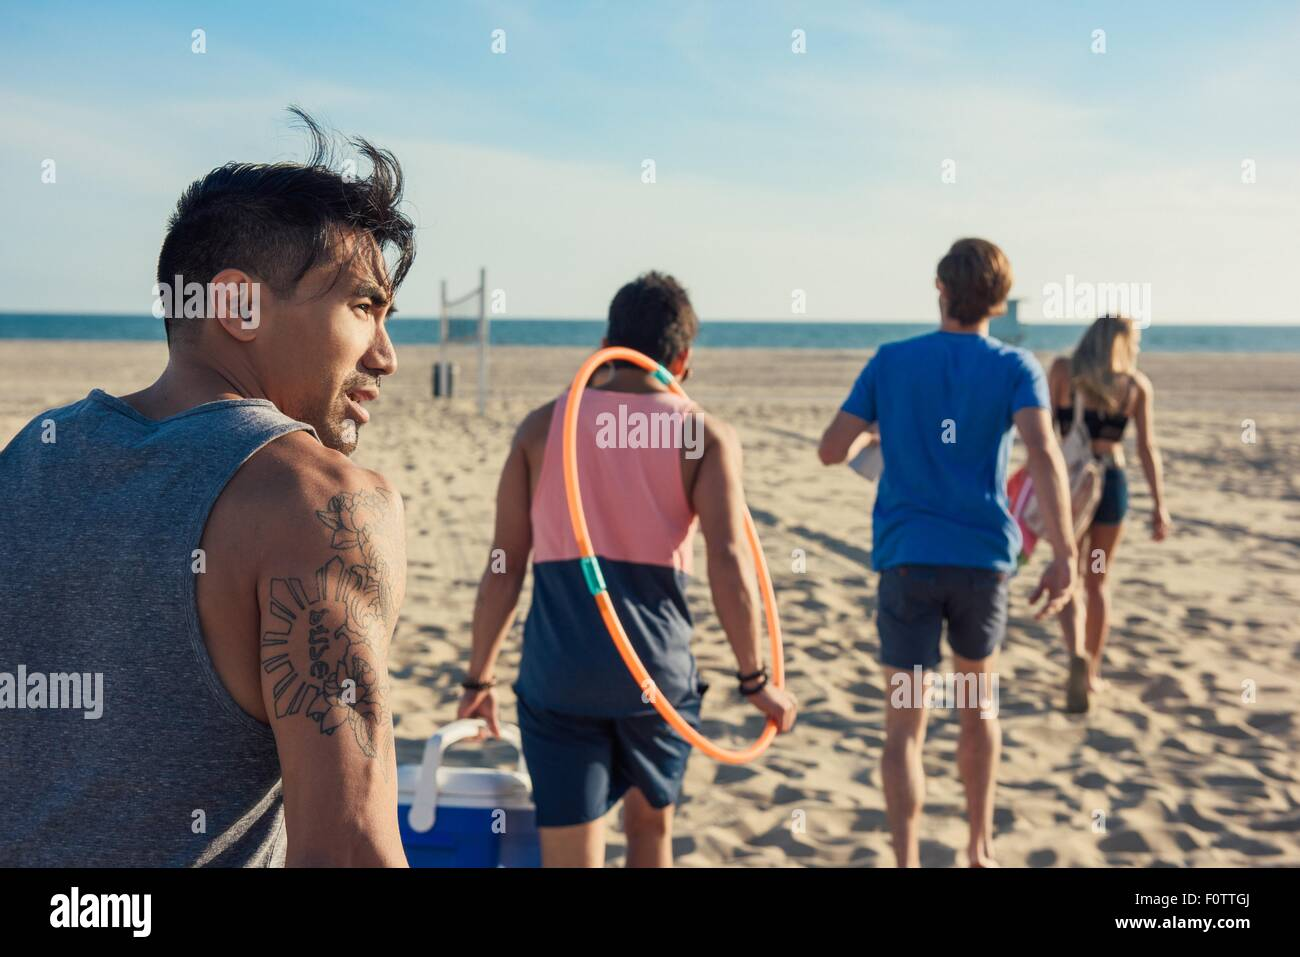 Group of friends walking on beach, rear view - Stock Image